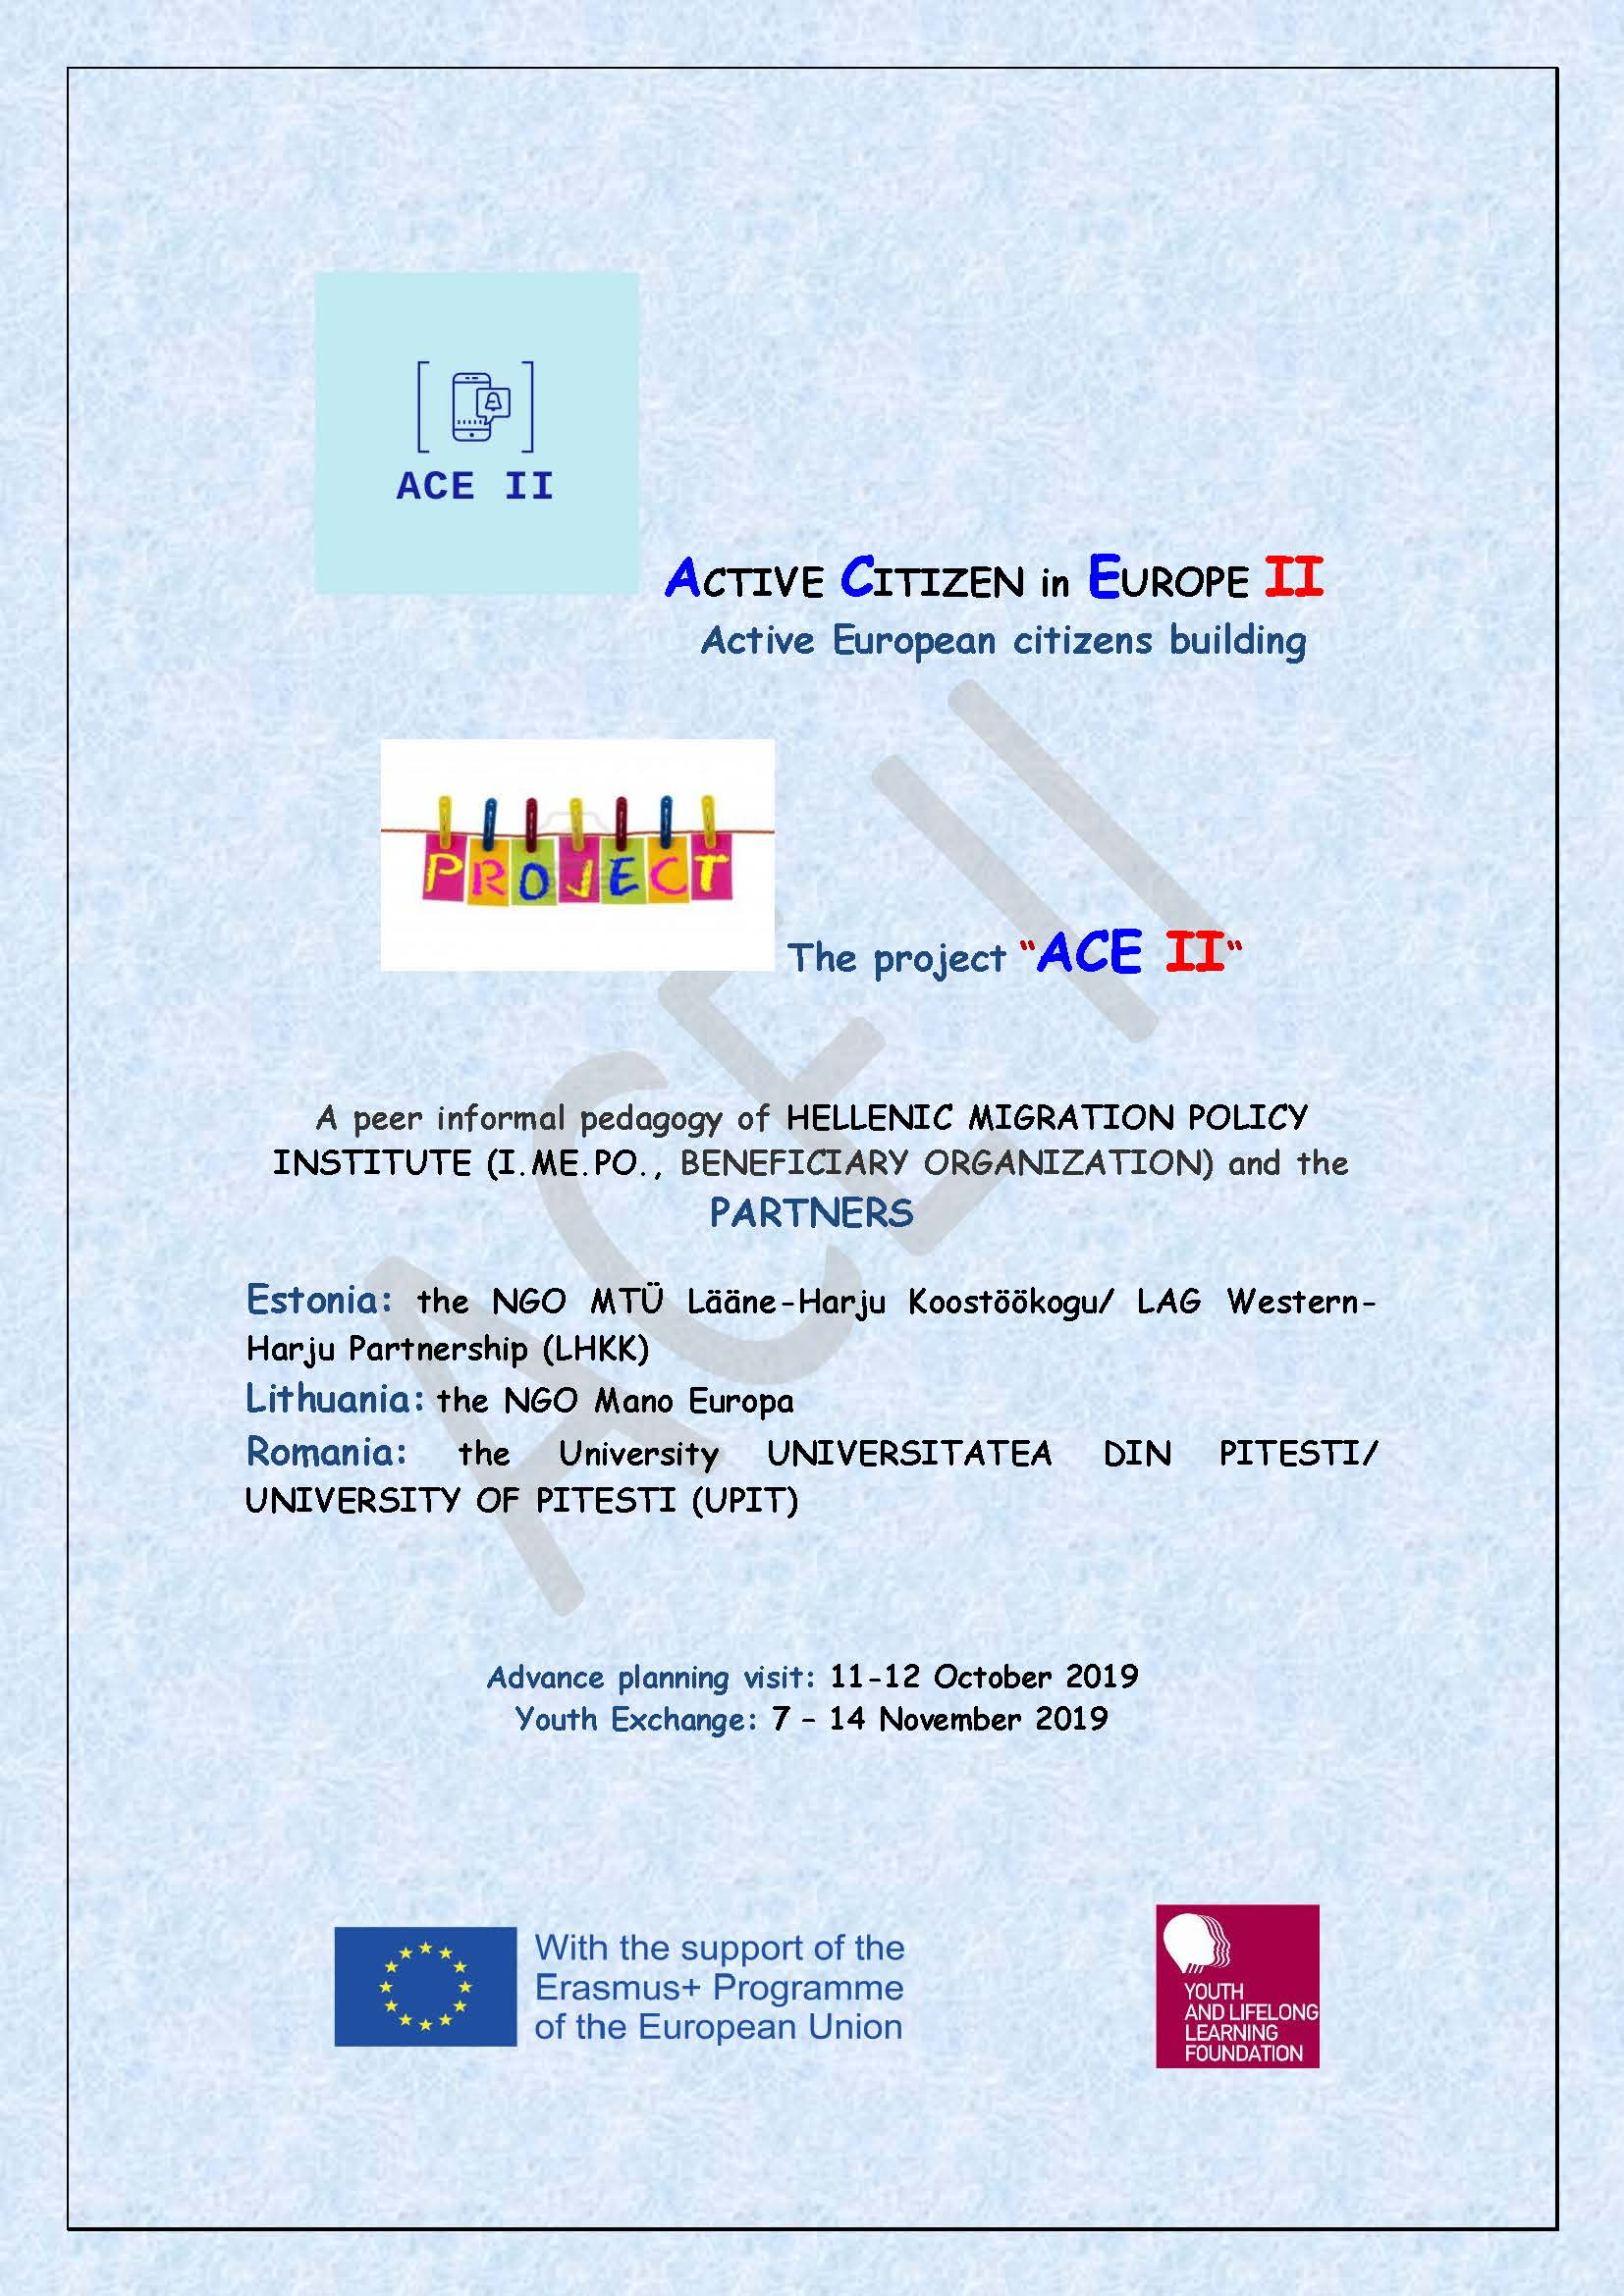 INFO-BASIC-Flyer-project-ACE-II_Page_1